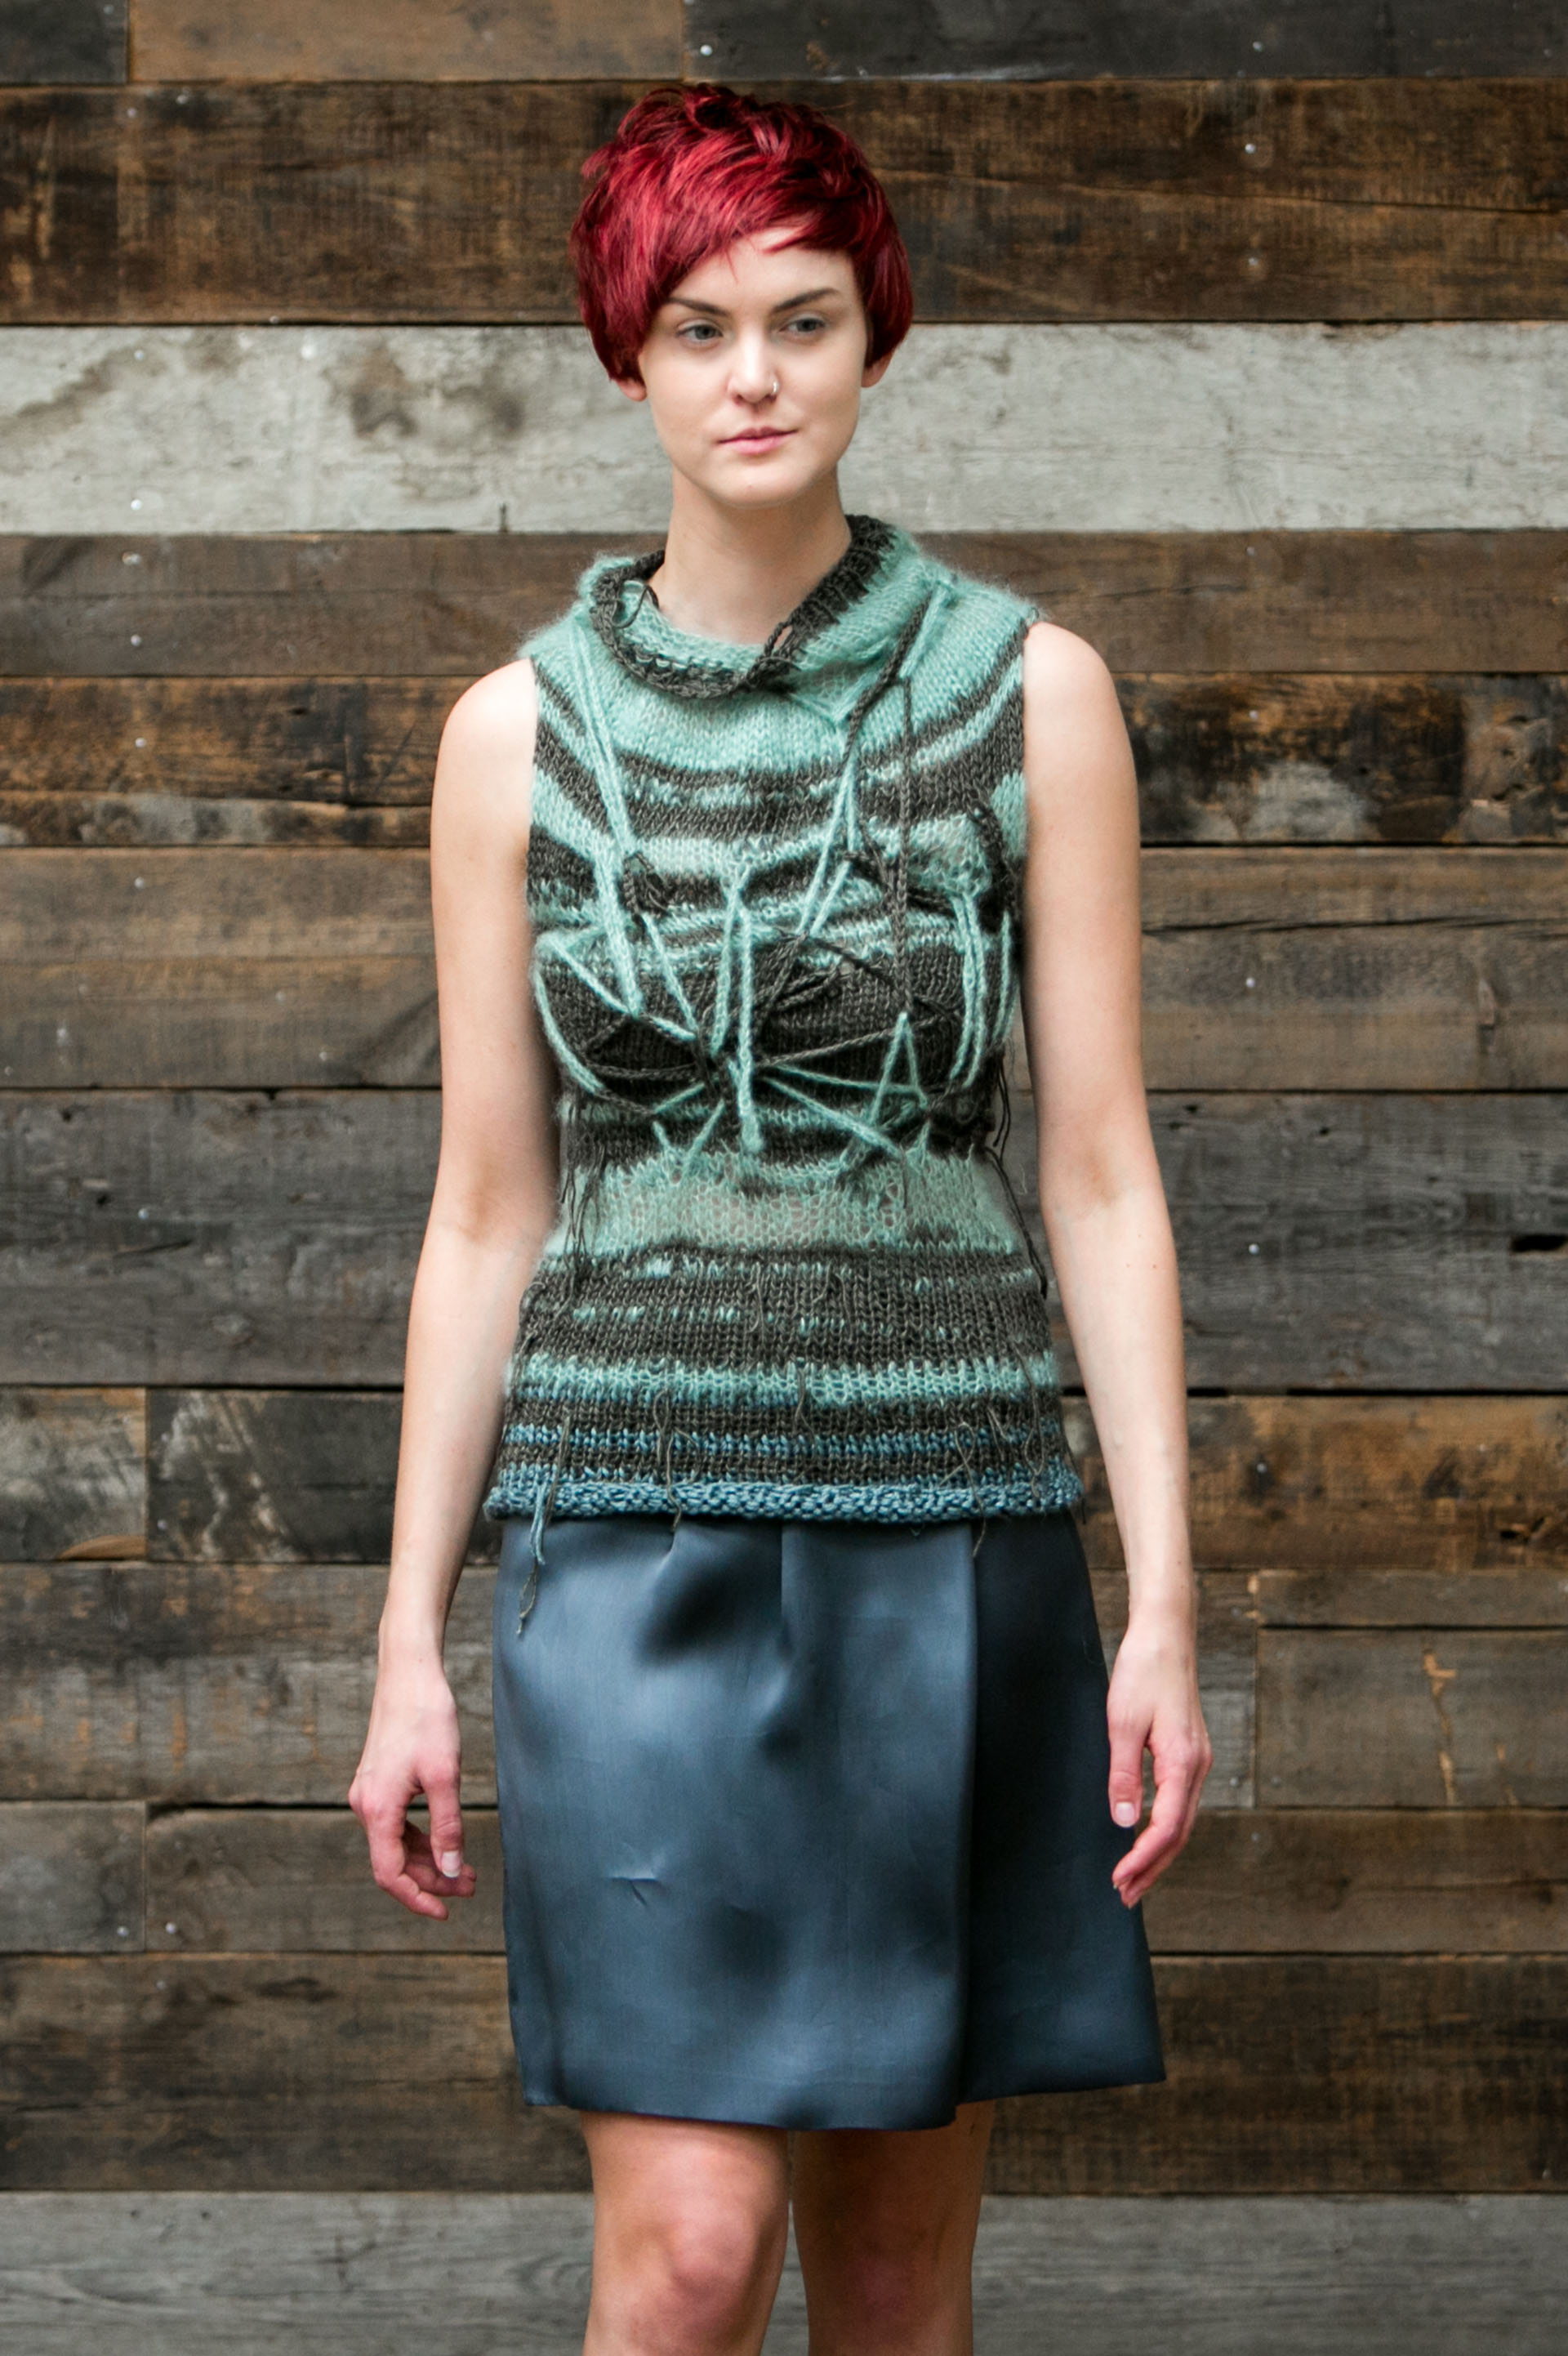 Claire Andrew Womenswear Collection Couture Knitwear Conceptual Knit Sweater Vest - Tangled Stripes